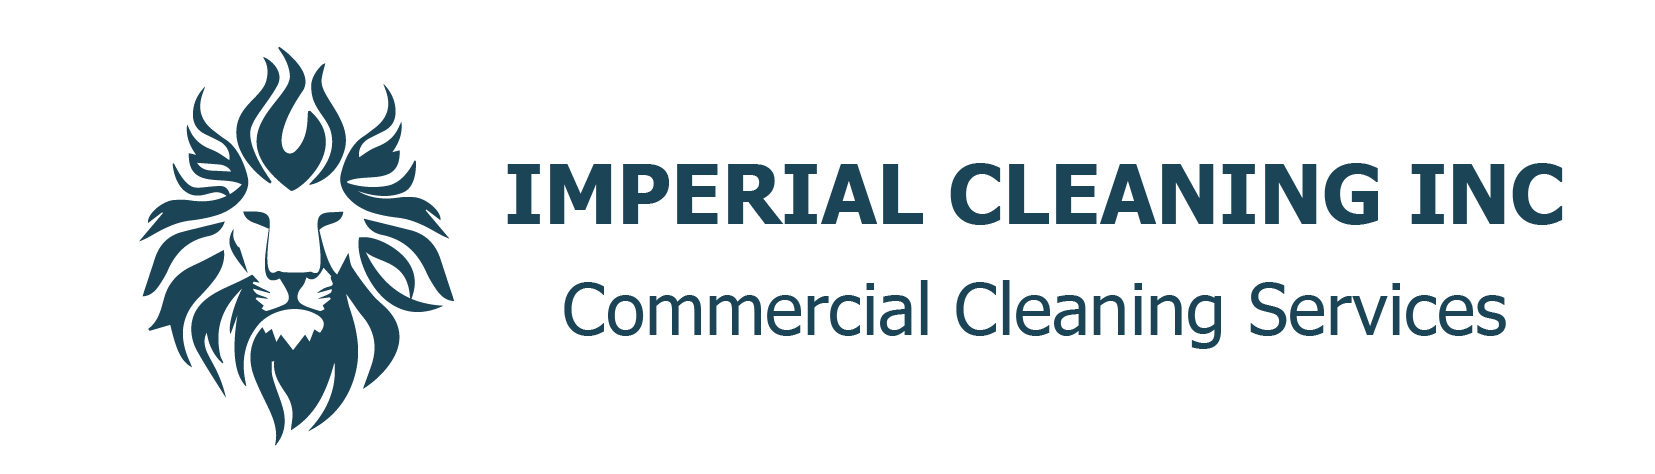 Commercial Cleaning Services Idaho Falls - Janitorial Services Idaho Falls - Imperial Cleaning Inc